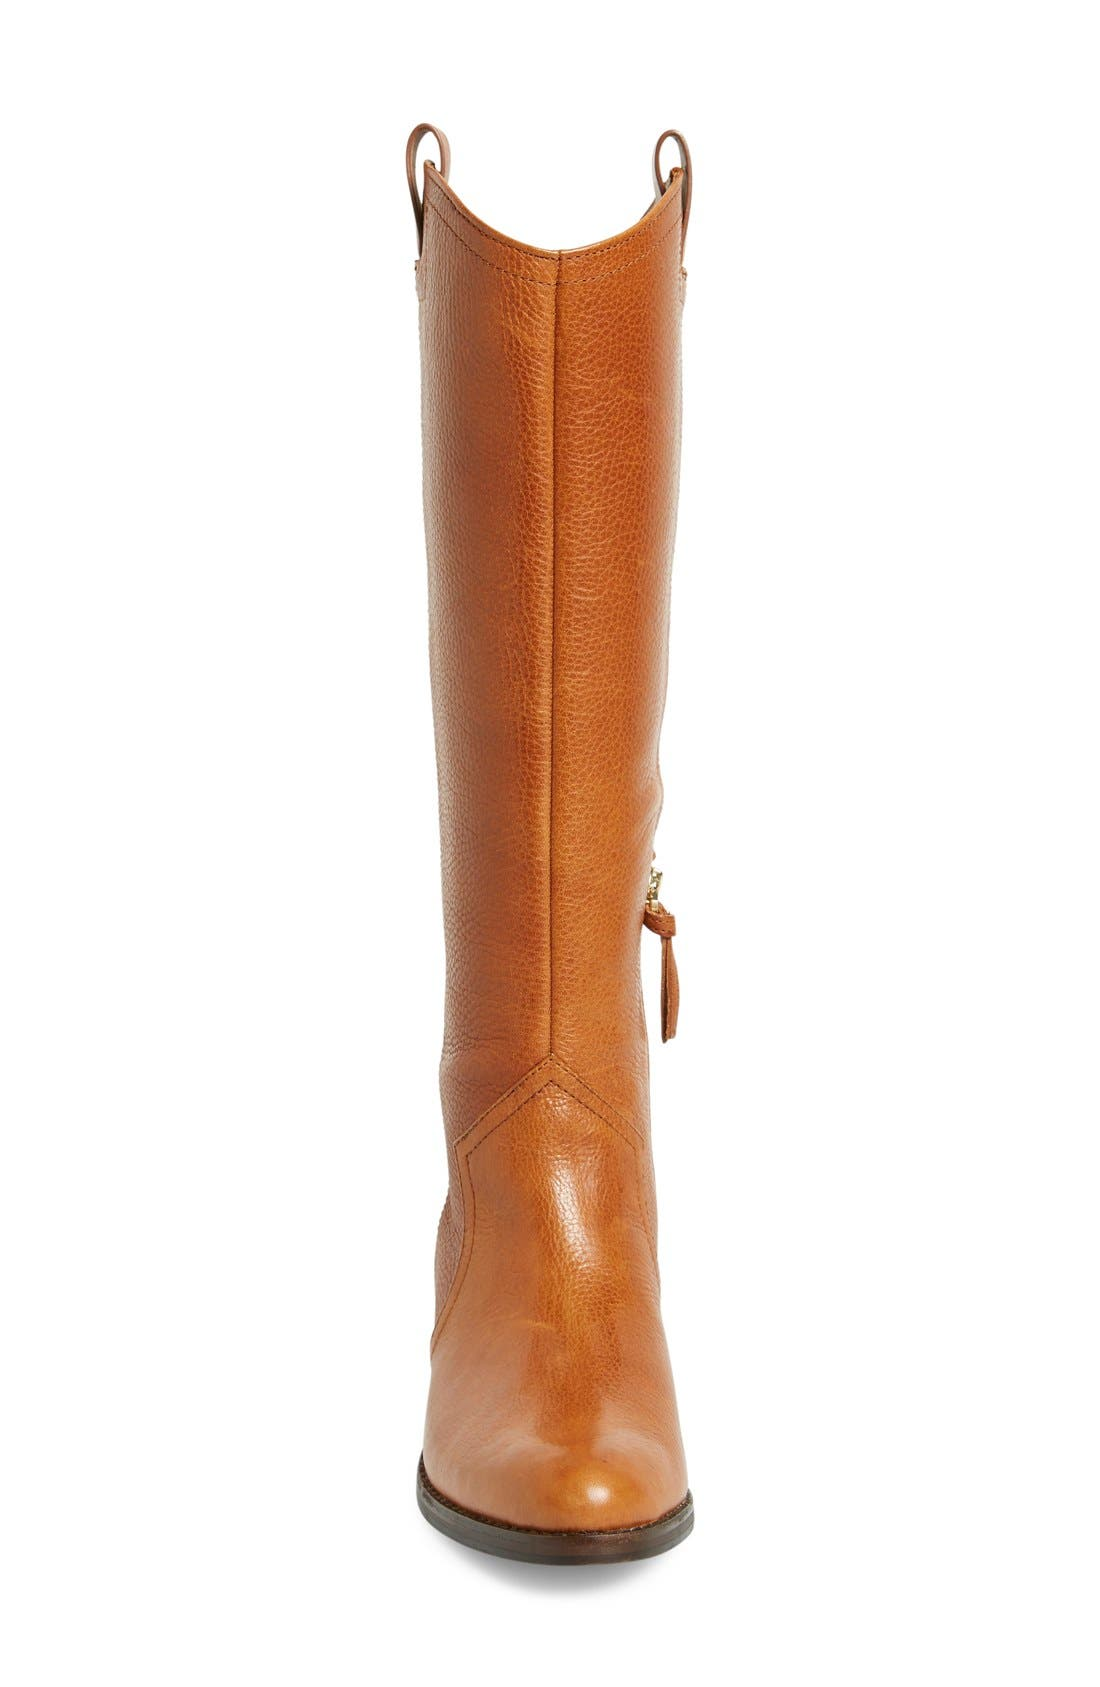 Alternate Image 3  - Louise et Cie 'Zada' Knee High Leather Riding Boot (Women) (Wide Calf) (Nordstrom Exclusive)